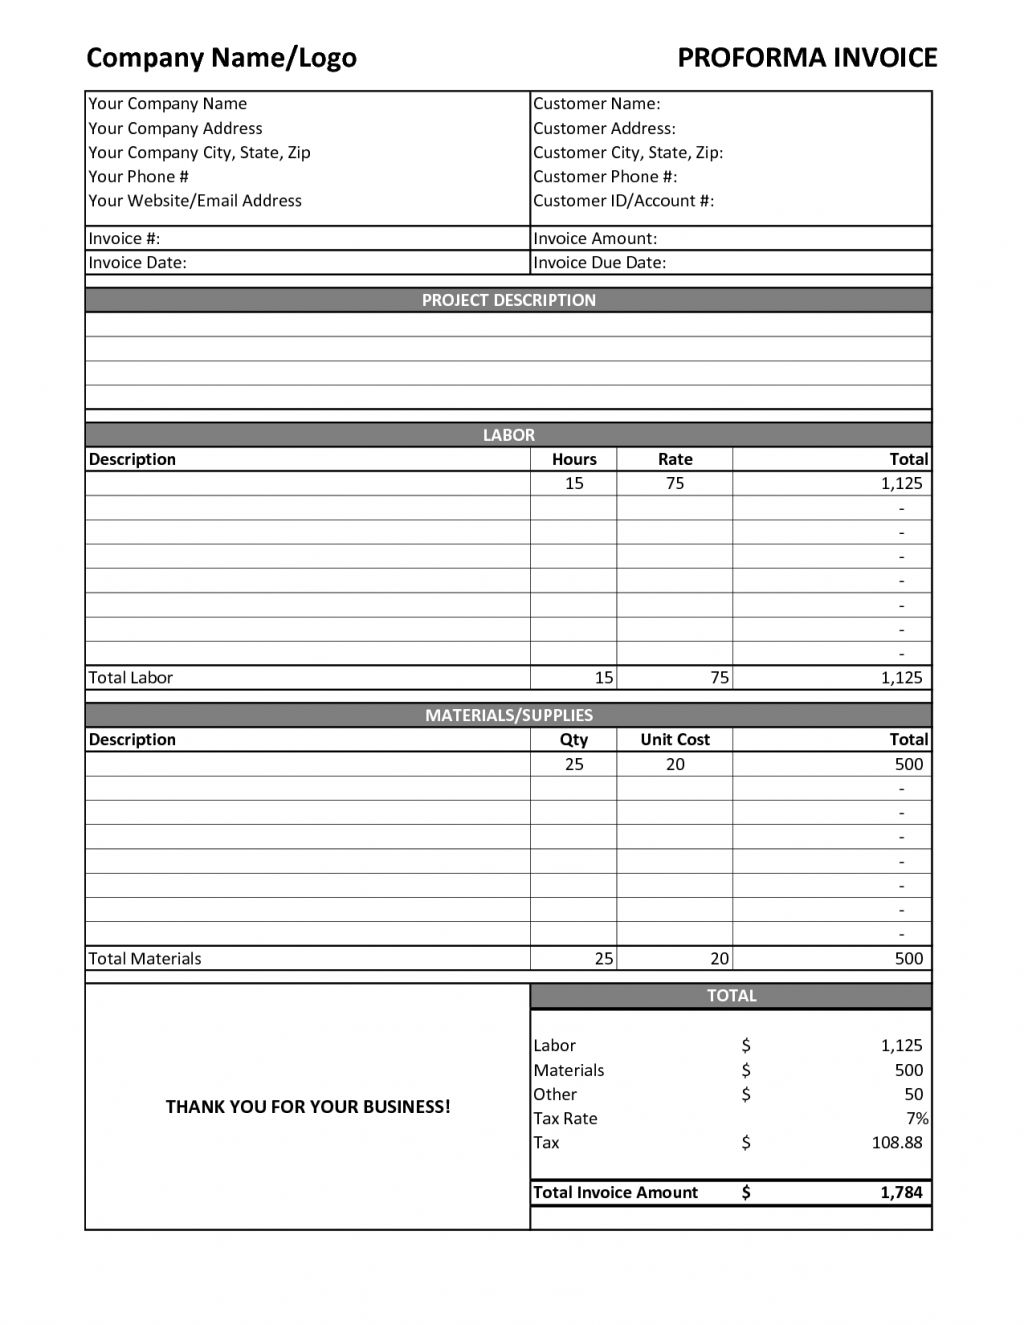 Contract Labor Invoice Template General Labor Invoice Spreadsheet For General Labor Invoice